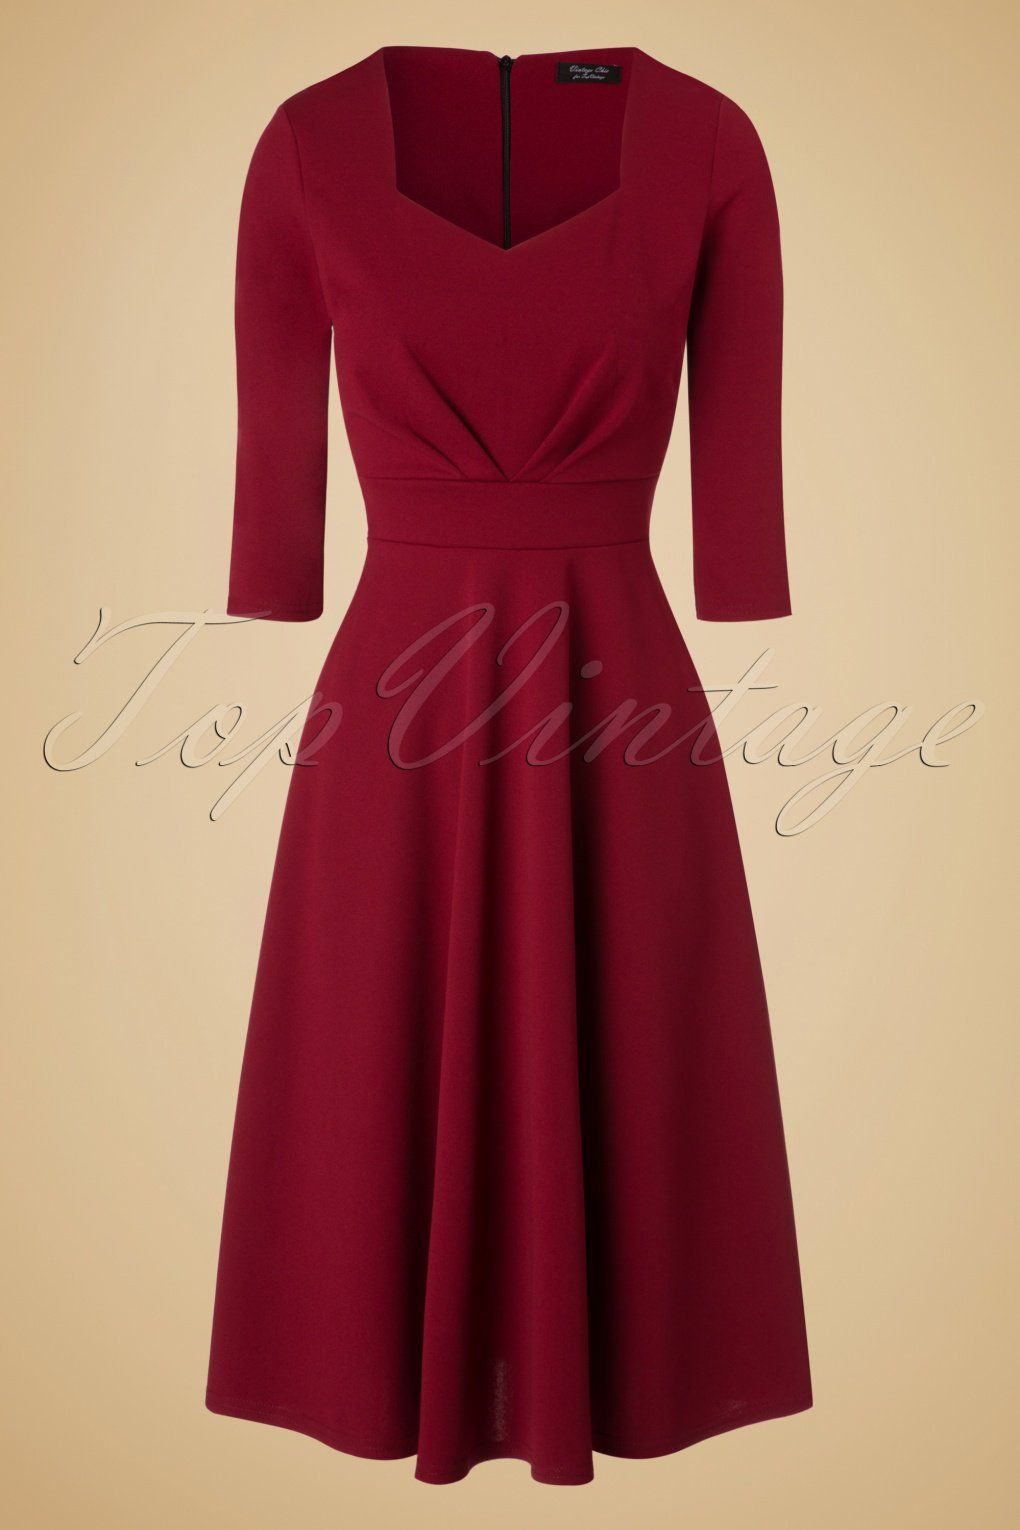 Feminine and flirty this 50s Ruby Swing Dress! Wow, such a stunner ...